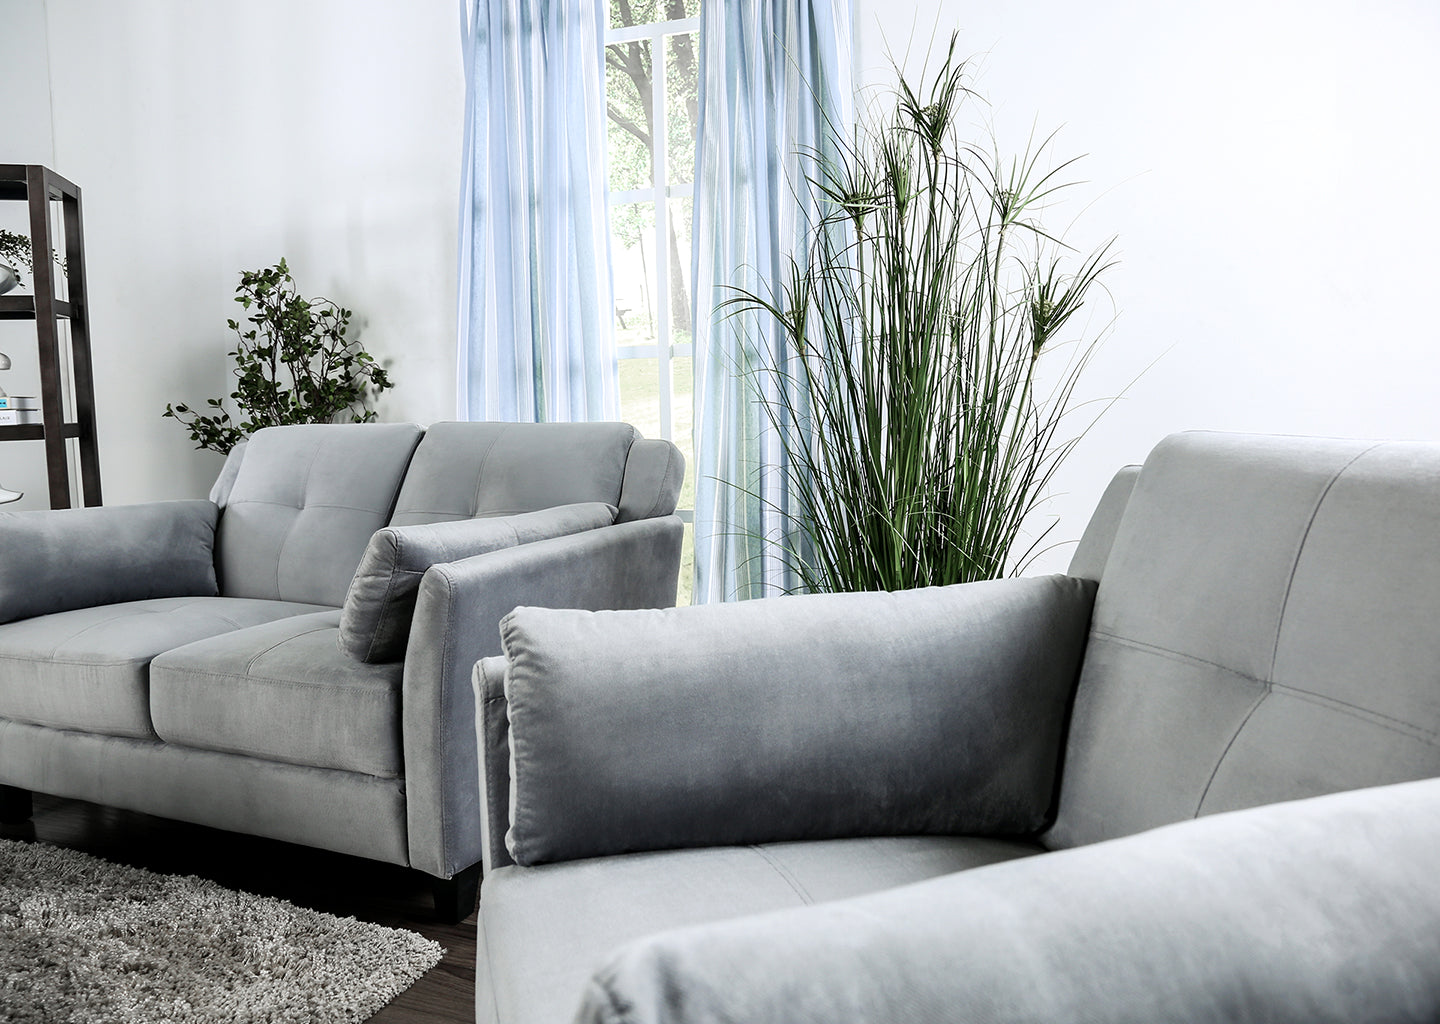 Designer's Corner: A Touch of Greenery